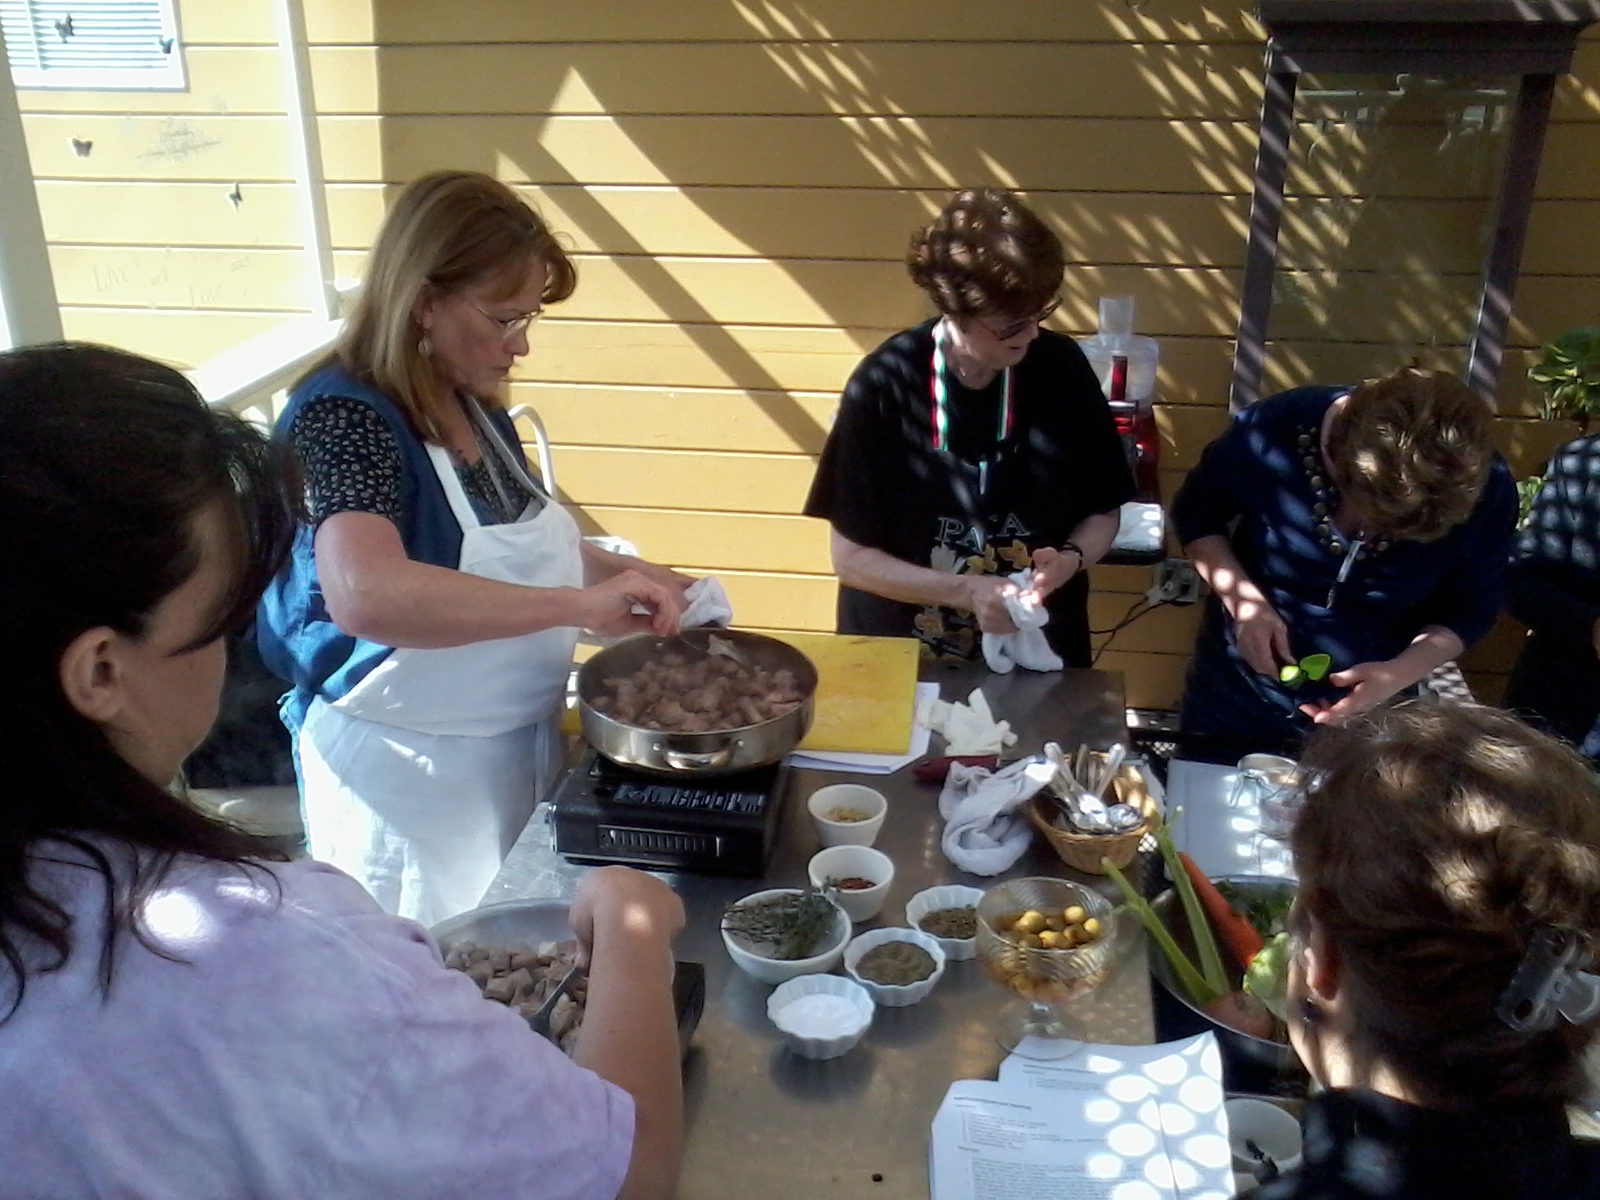 cooking-party05.jpg